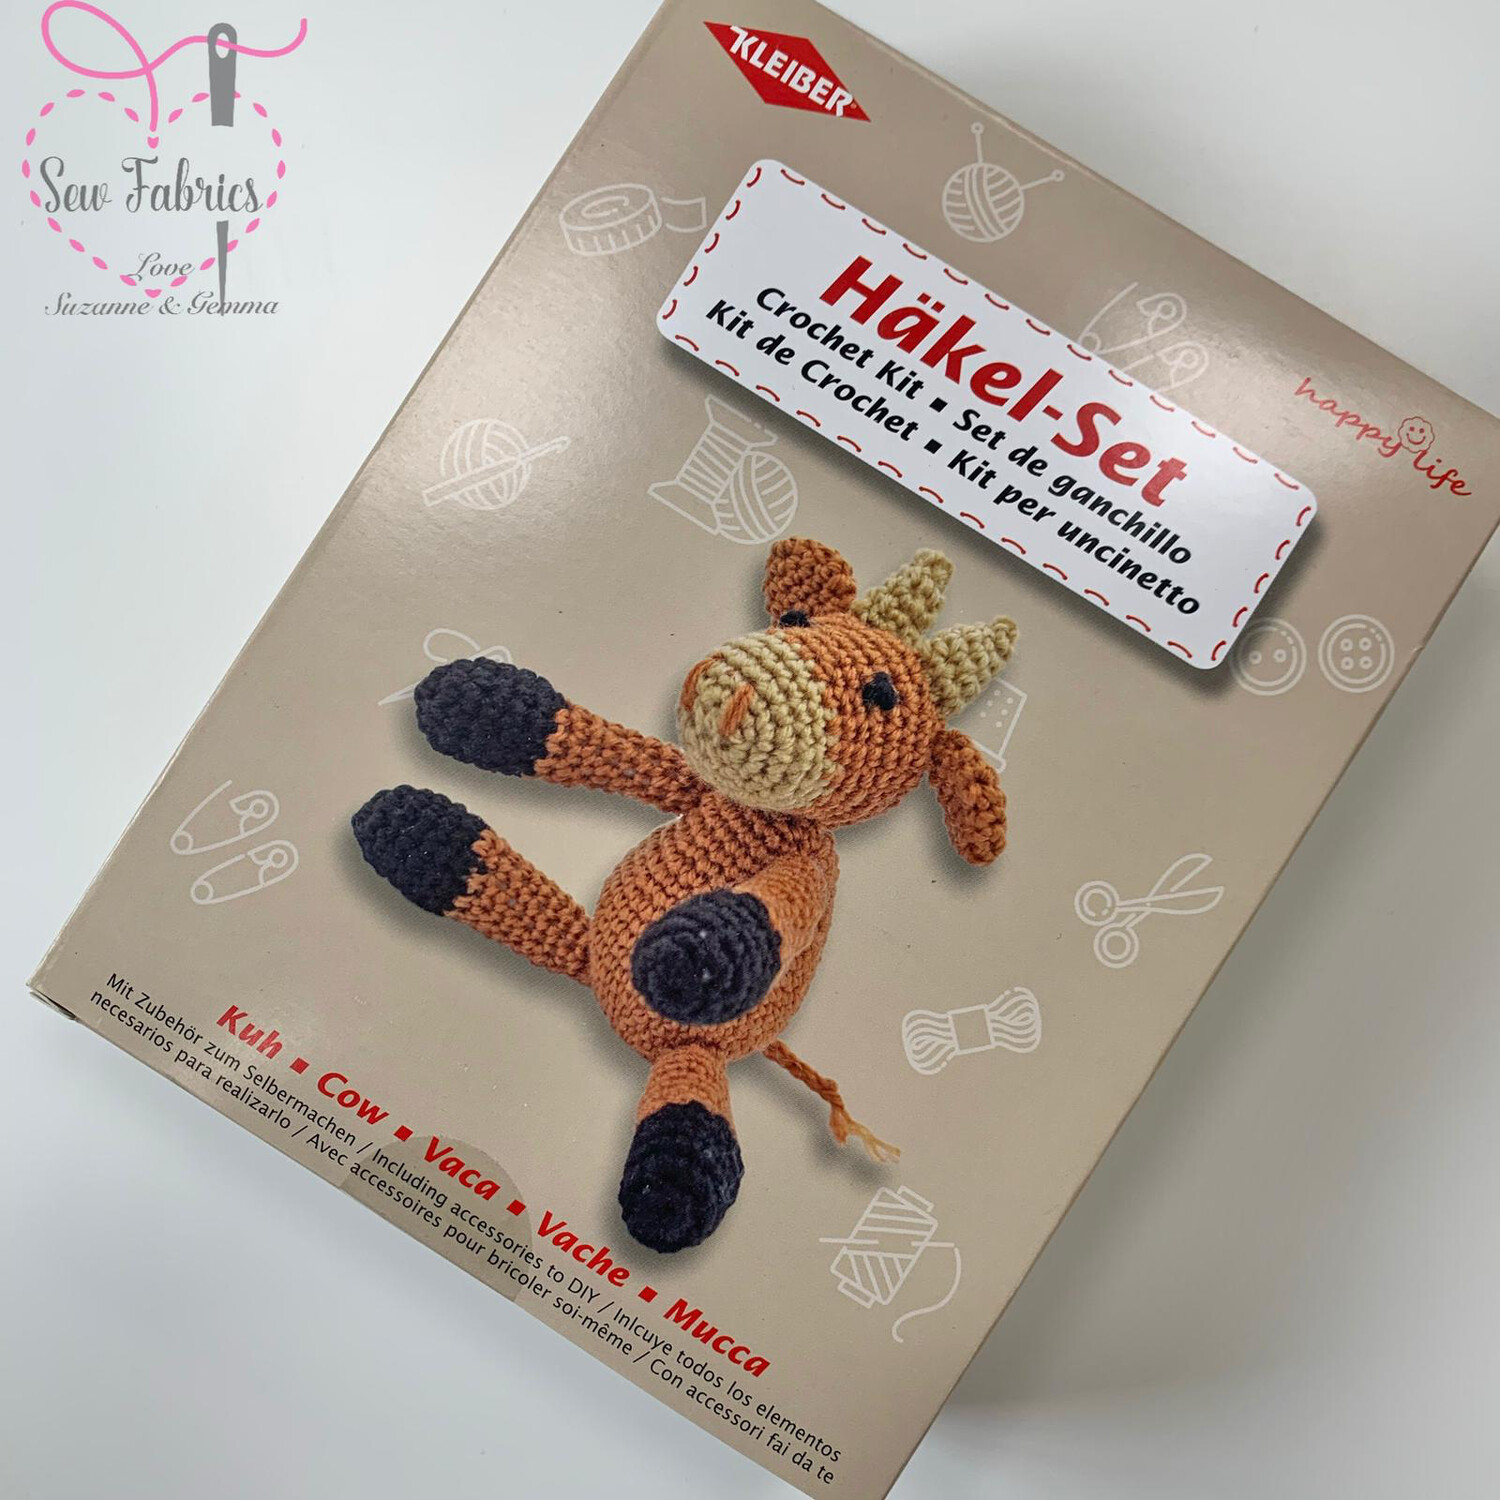 Cow Kleiber Crochet Toy Kit